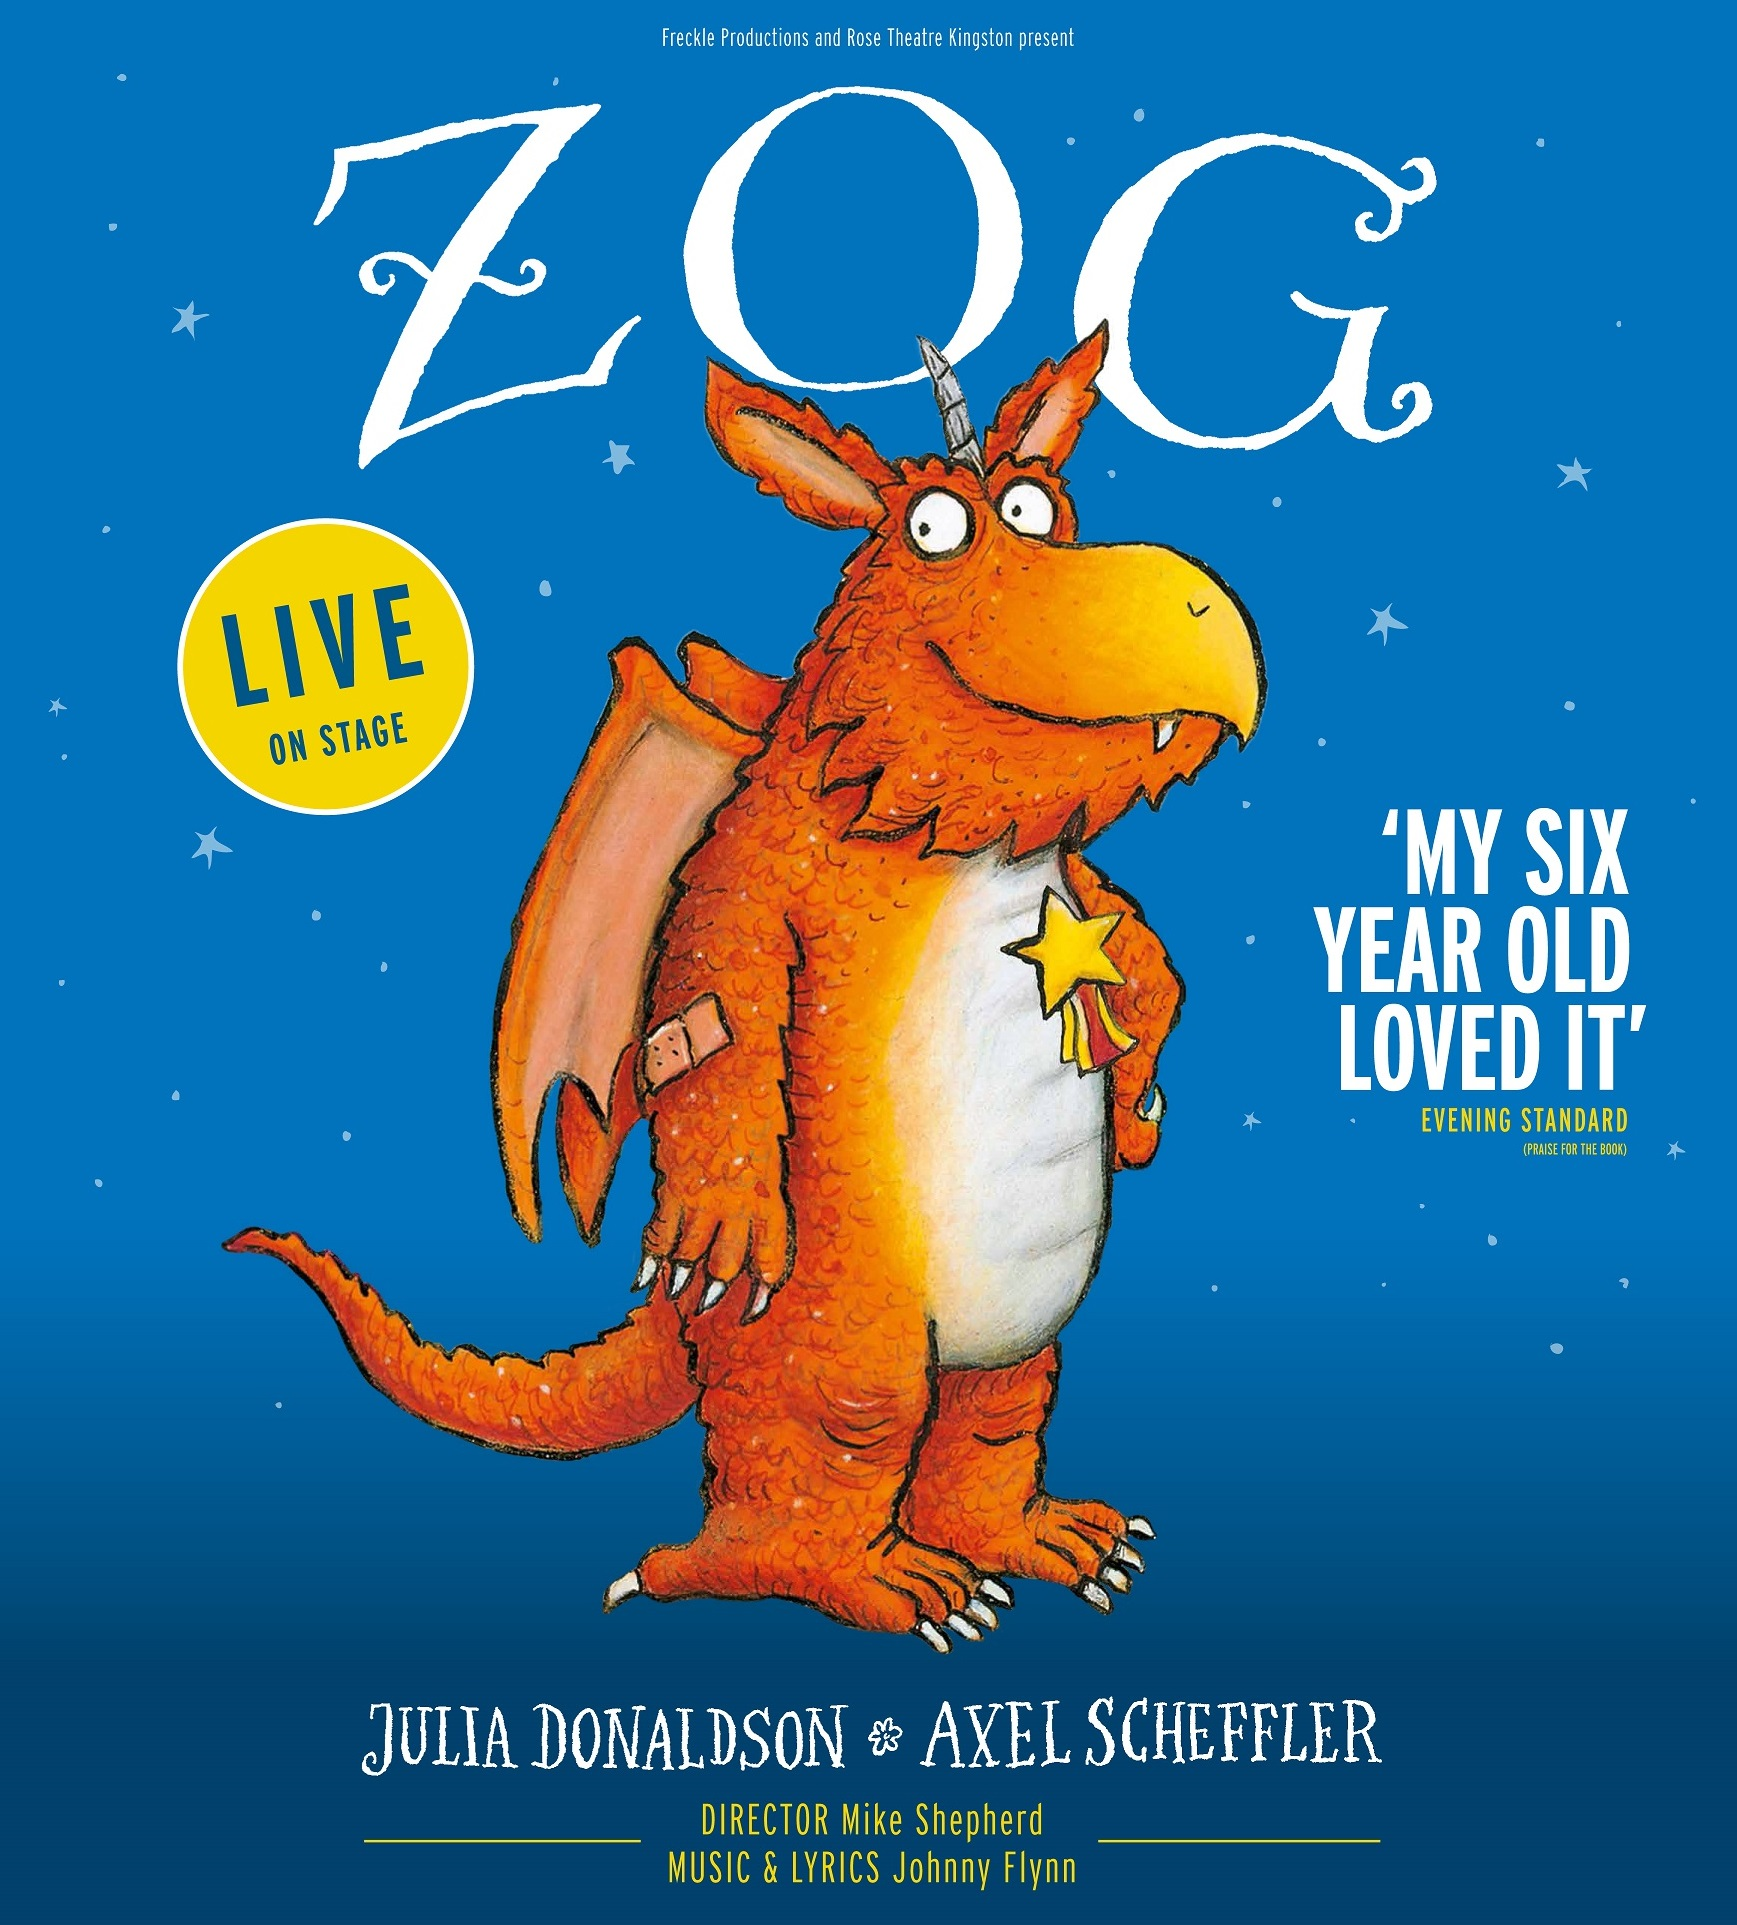 Julia Donaldson's Zog, is live to the stage at St David's Hall for six shows from Friday 26 – Sunday 28 April!, 2019.